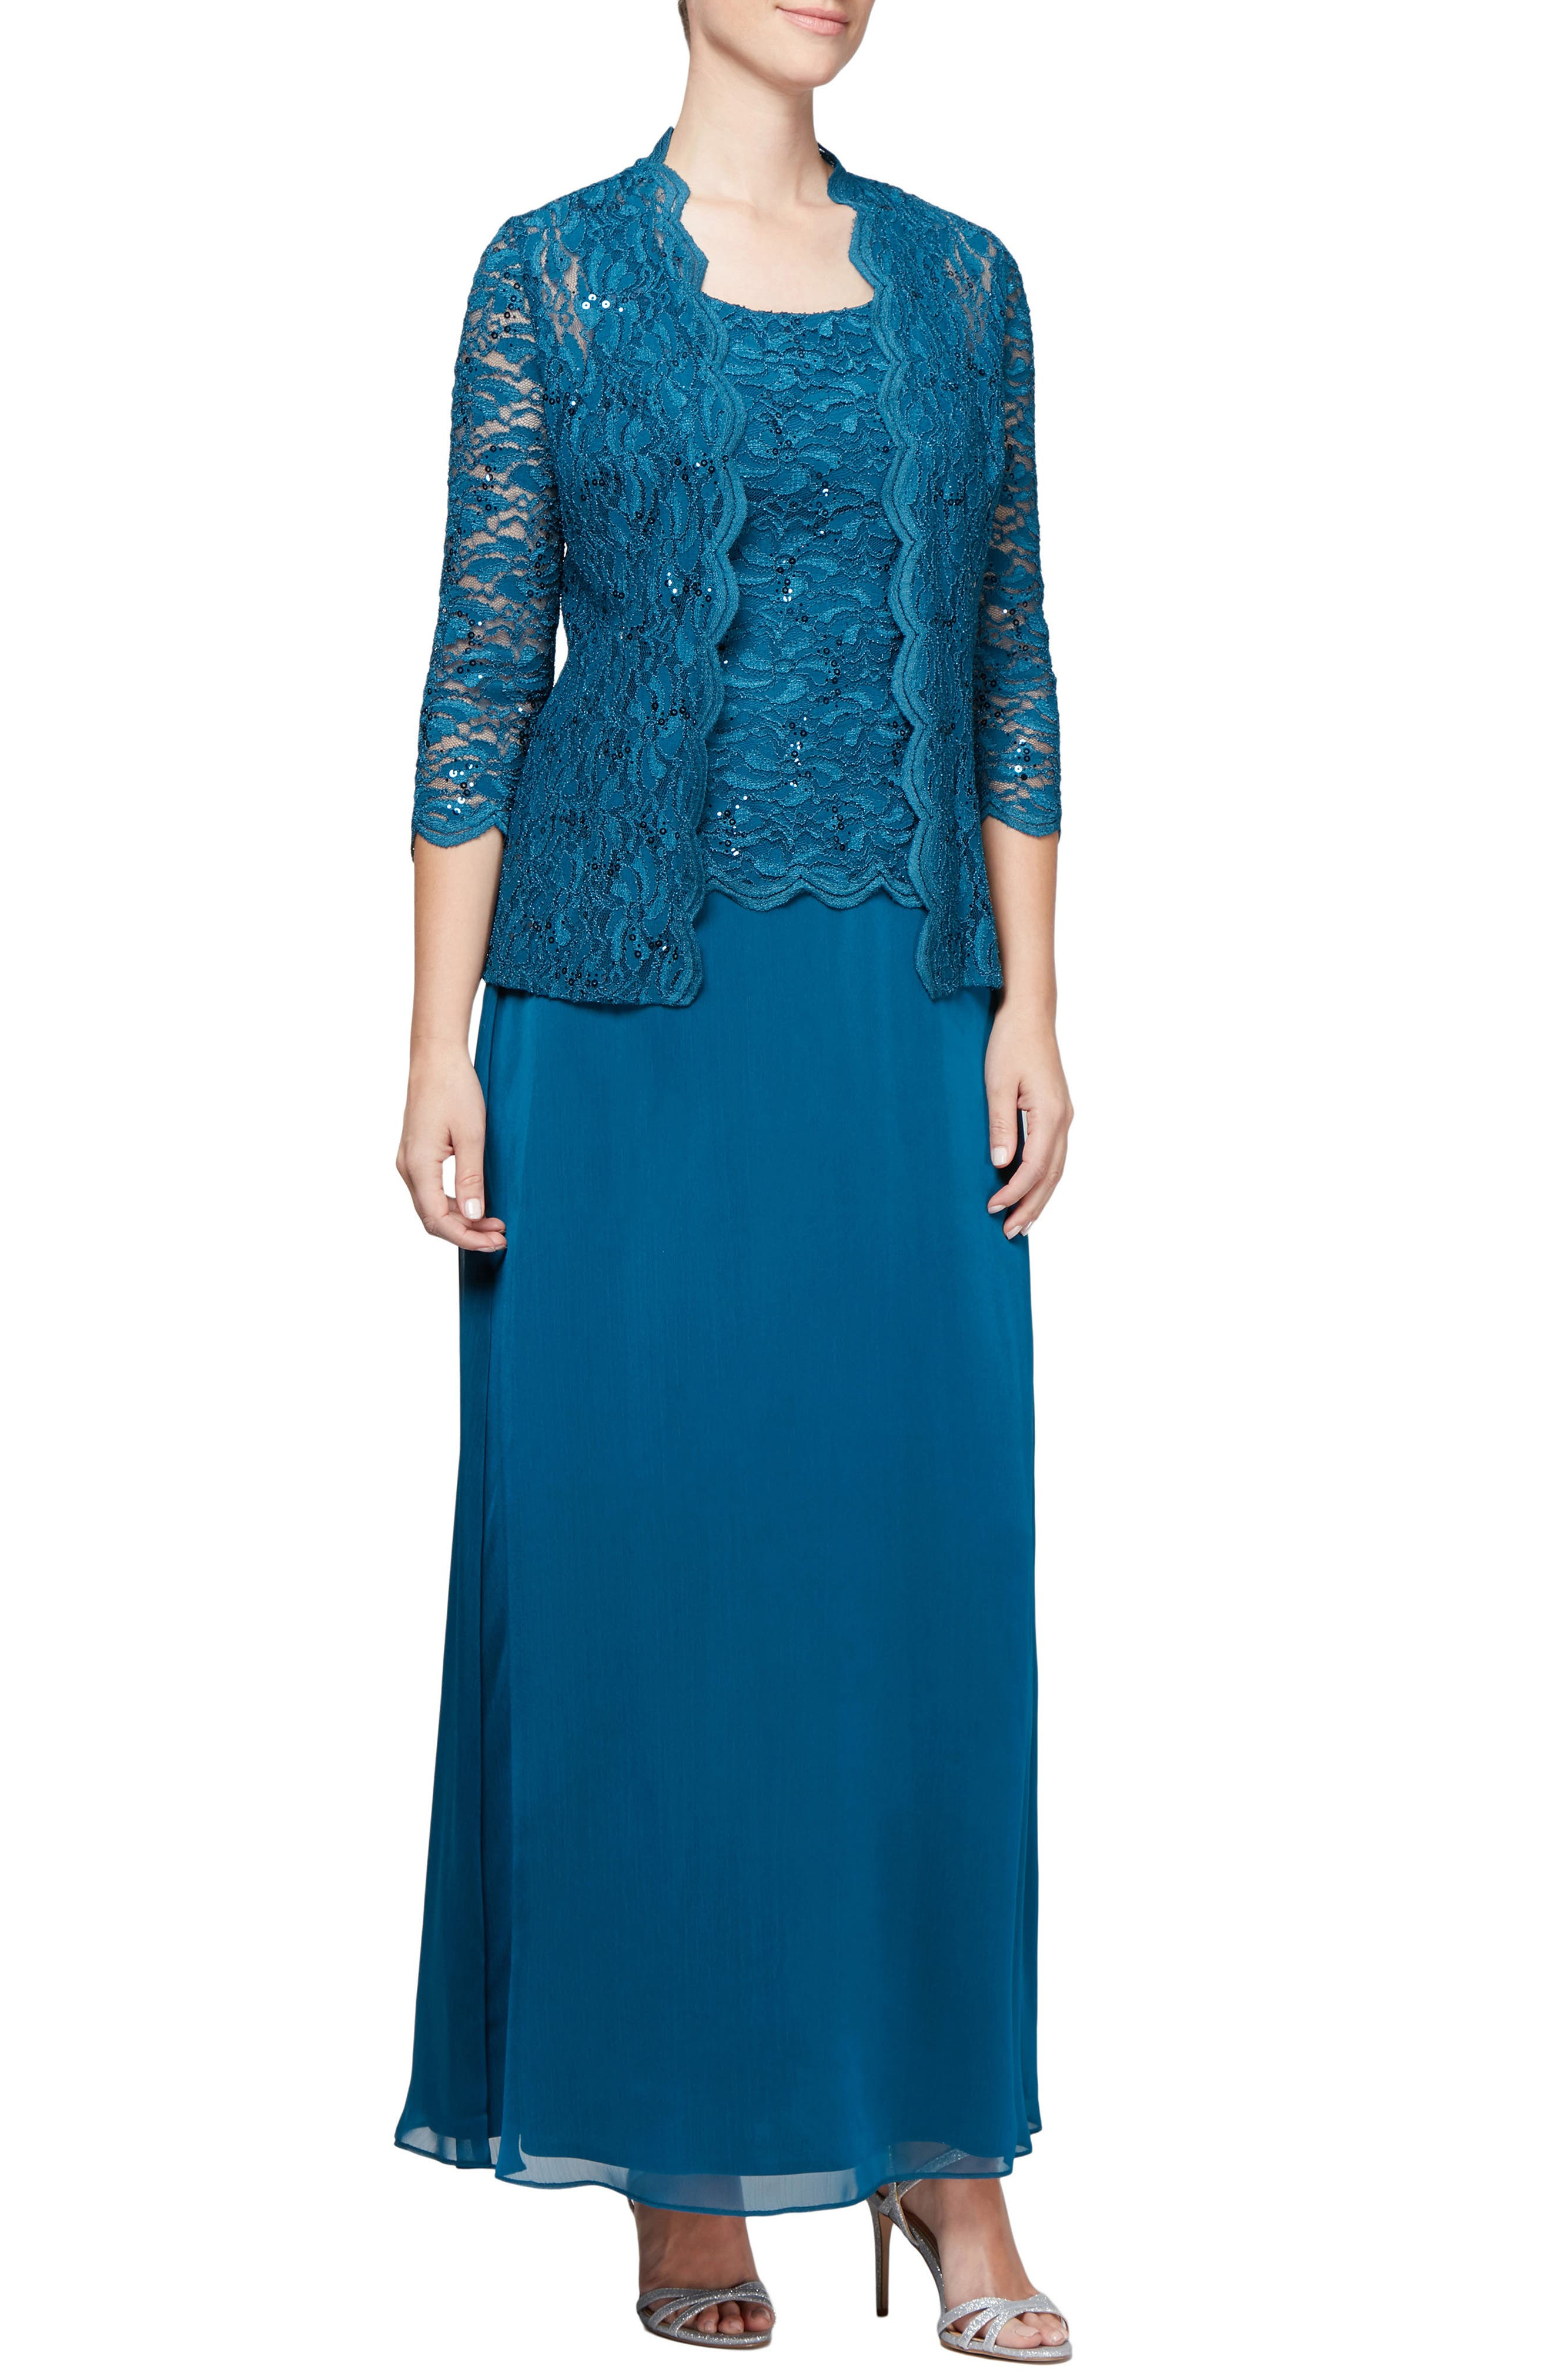 Alex Evenings Sequin Lace & Chiffon Gown With Jacket, 8 (similar to 1) - Blue